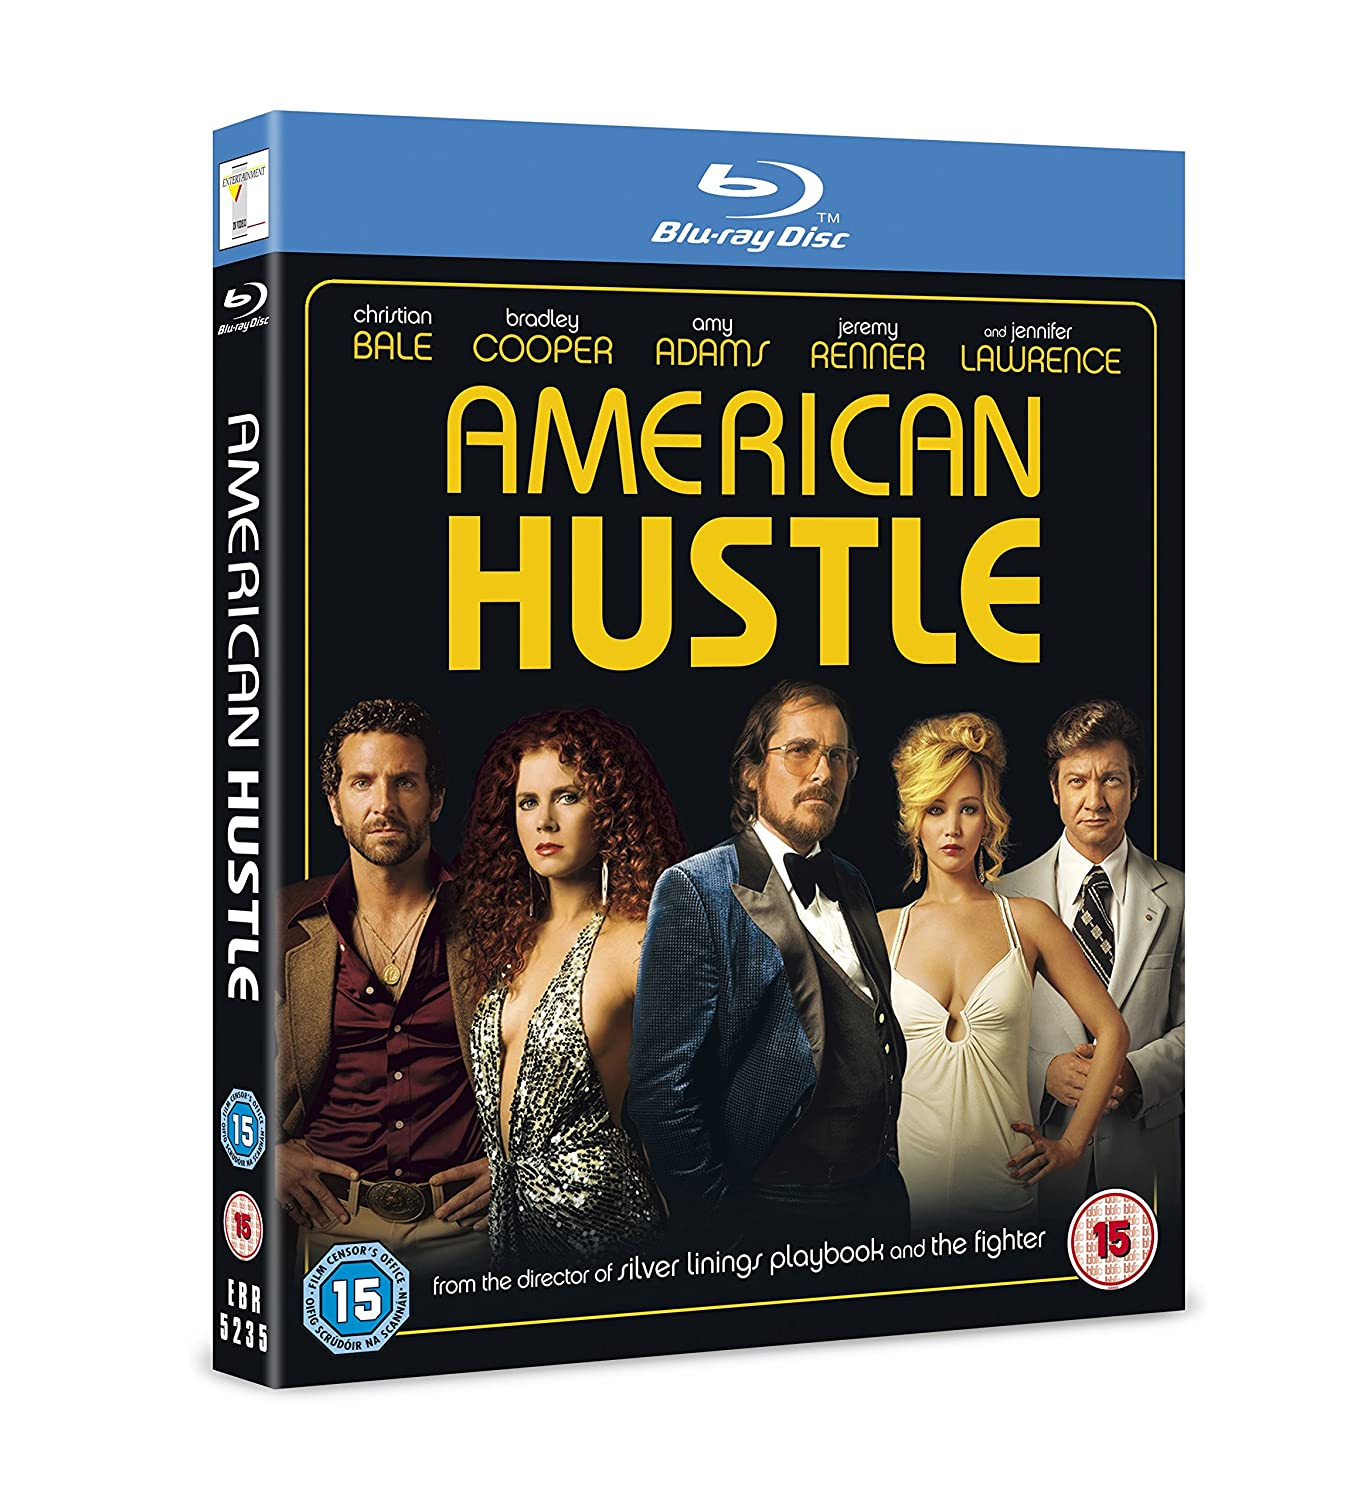 Hustler dvd review